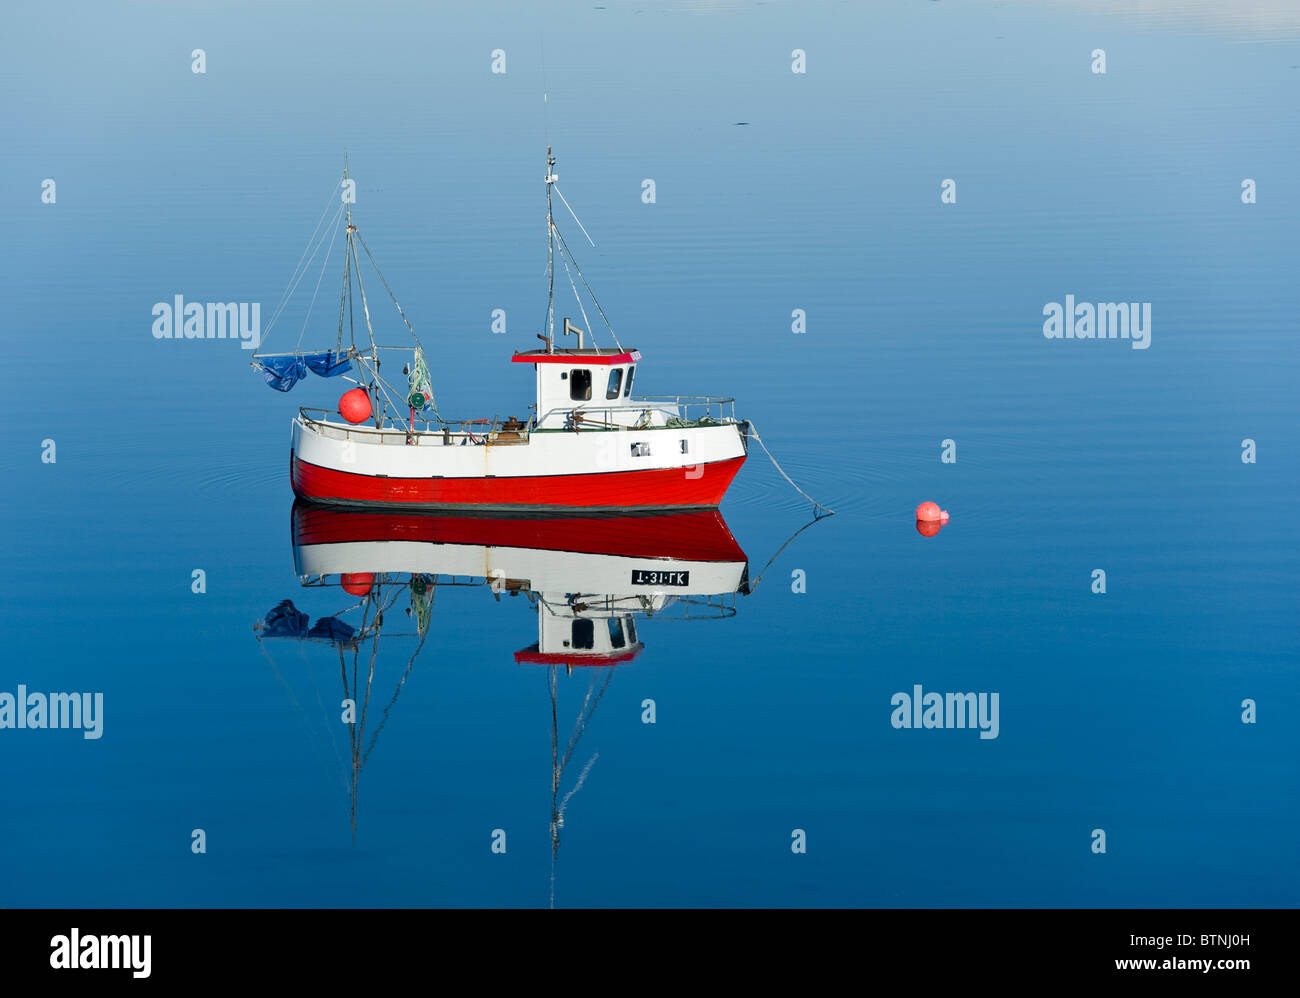 Small red smack, fisherman's boat, on a calm sea. Tromso, North Norway - Stock Image